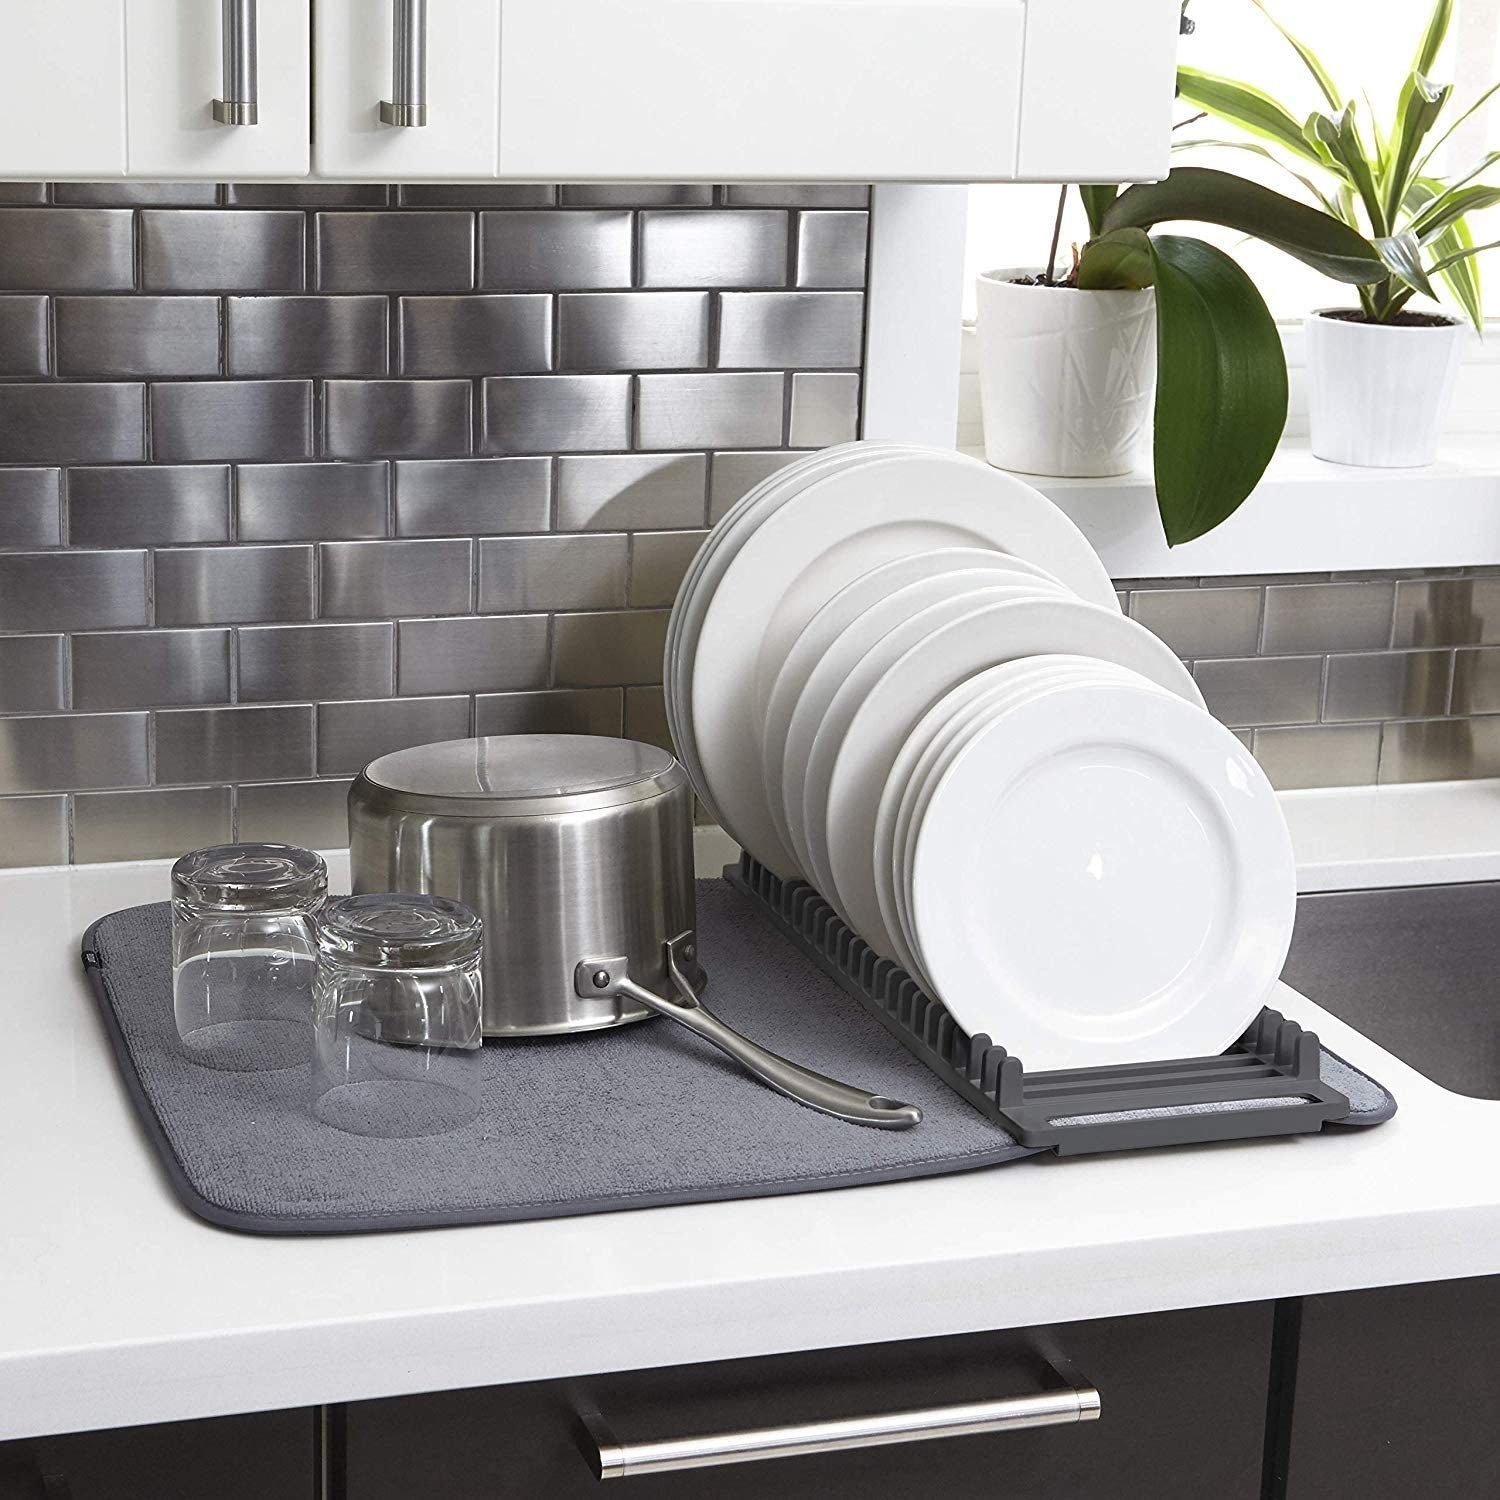 kitchen countertop with a combo dish-drying mat and pad